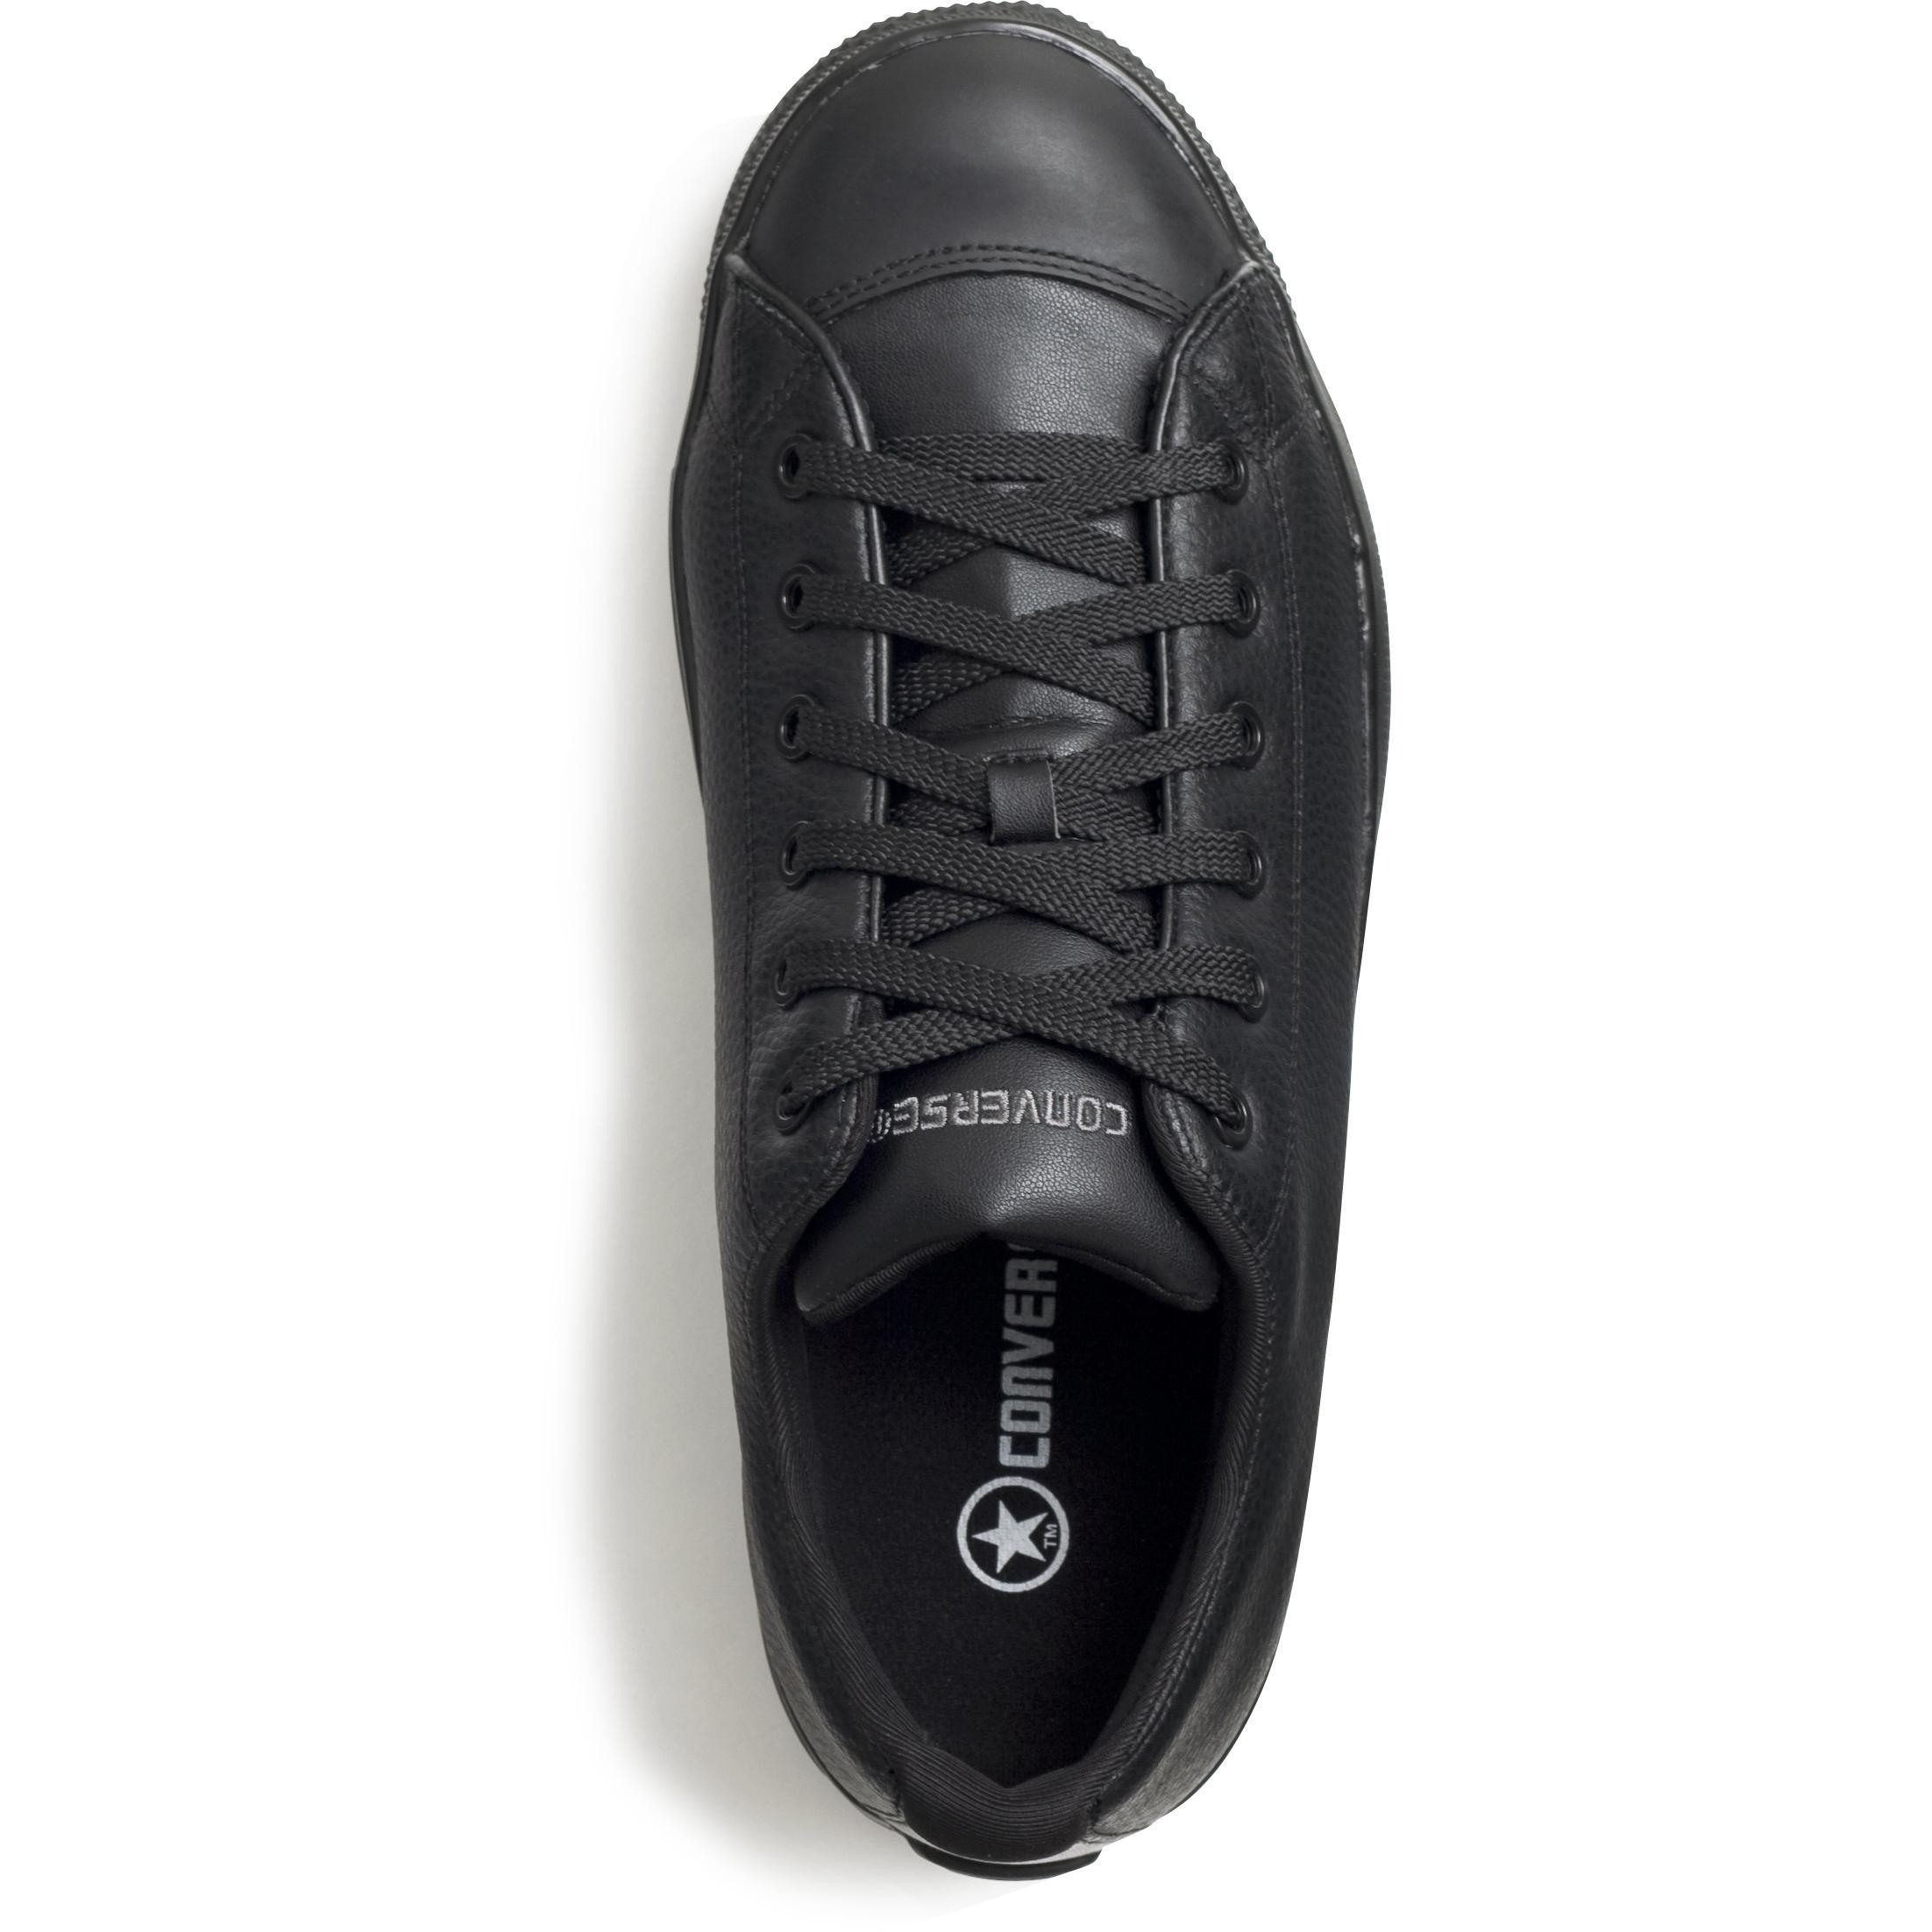 Converse Women s Slip Resistant Oxford - Lehigh Safety Shoes a83eae150